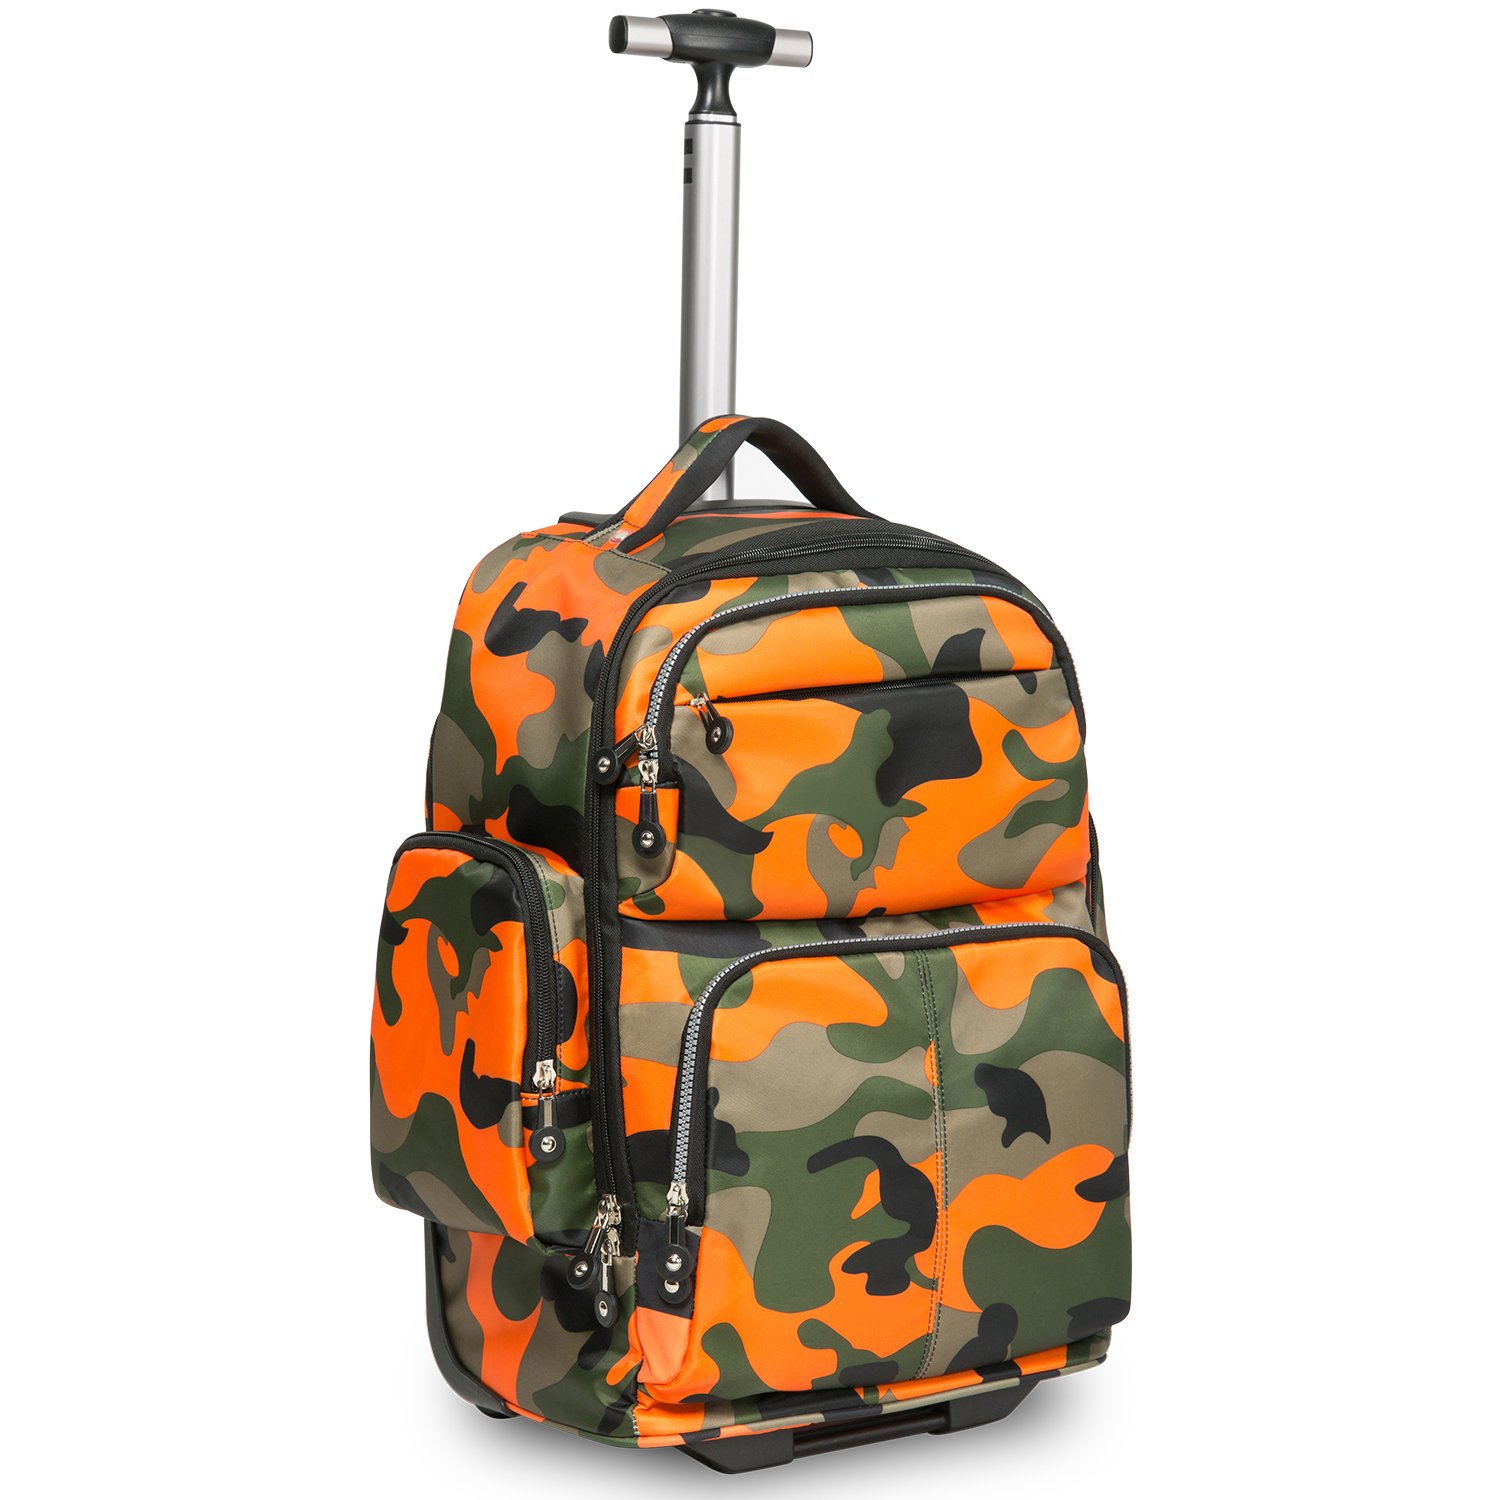 HollyHOME 20 inches Big Storage Waterproof Wheeled Rolling Backpack Travel Luggage for Boys Students School Books Laptop Bag, Orange Camouflage by HollyHOME